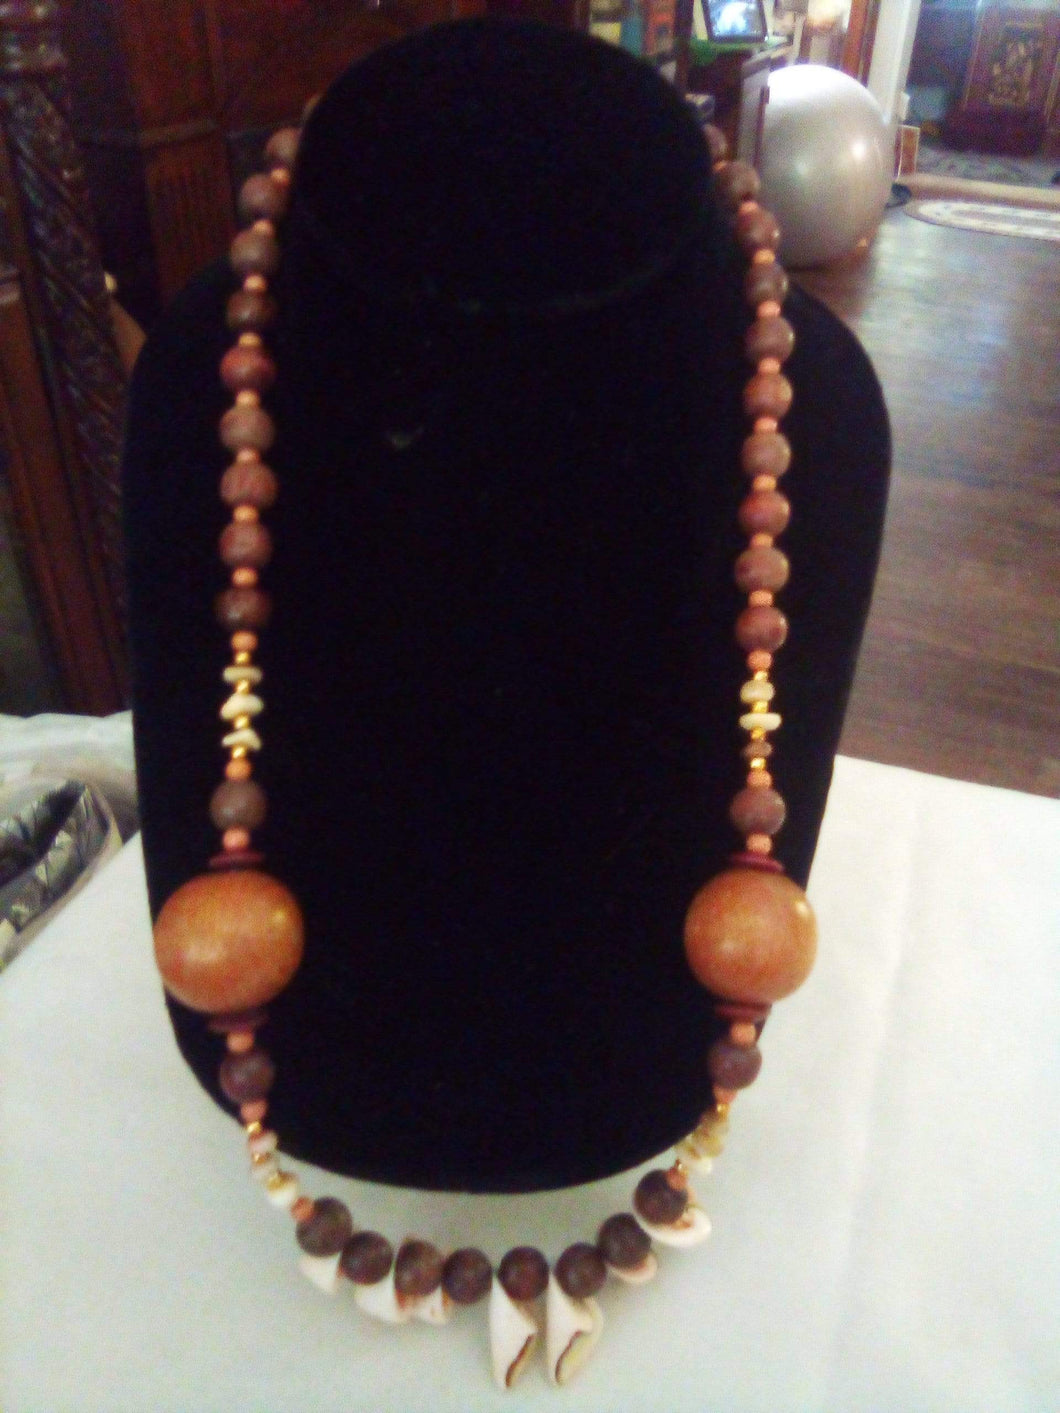 Nice necklace with wood and seashells - B&P'sringsnthings